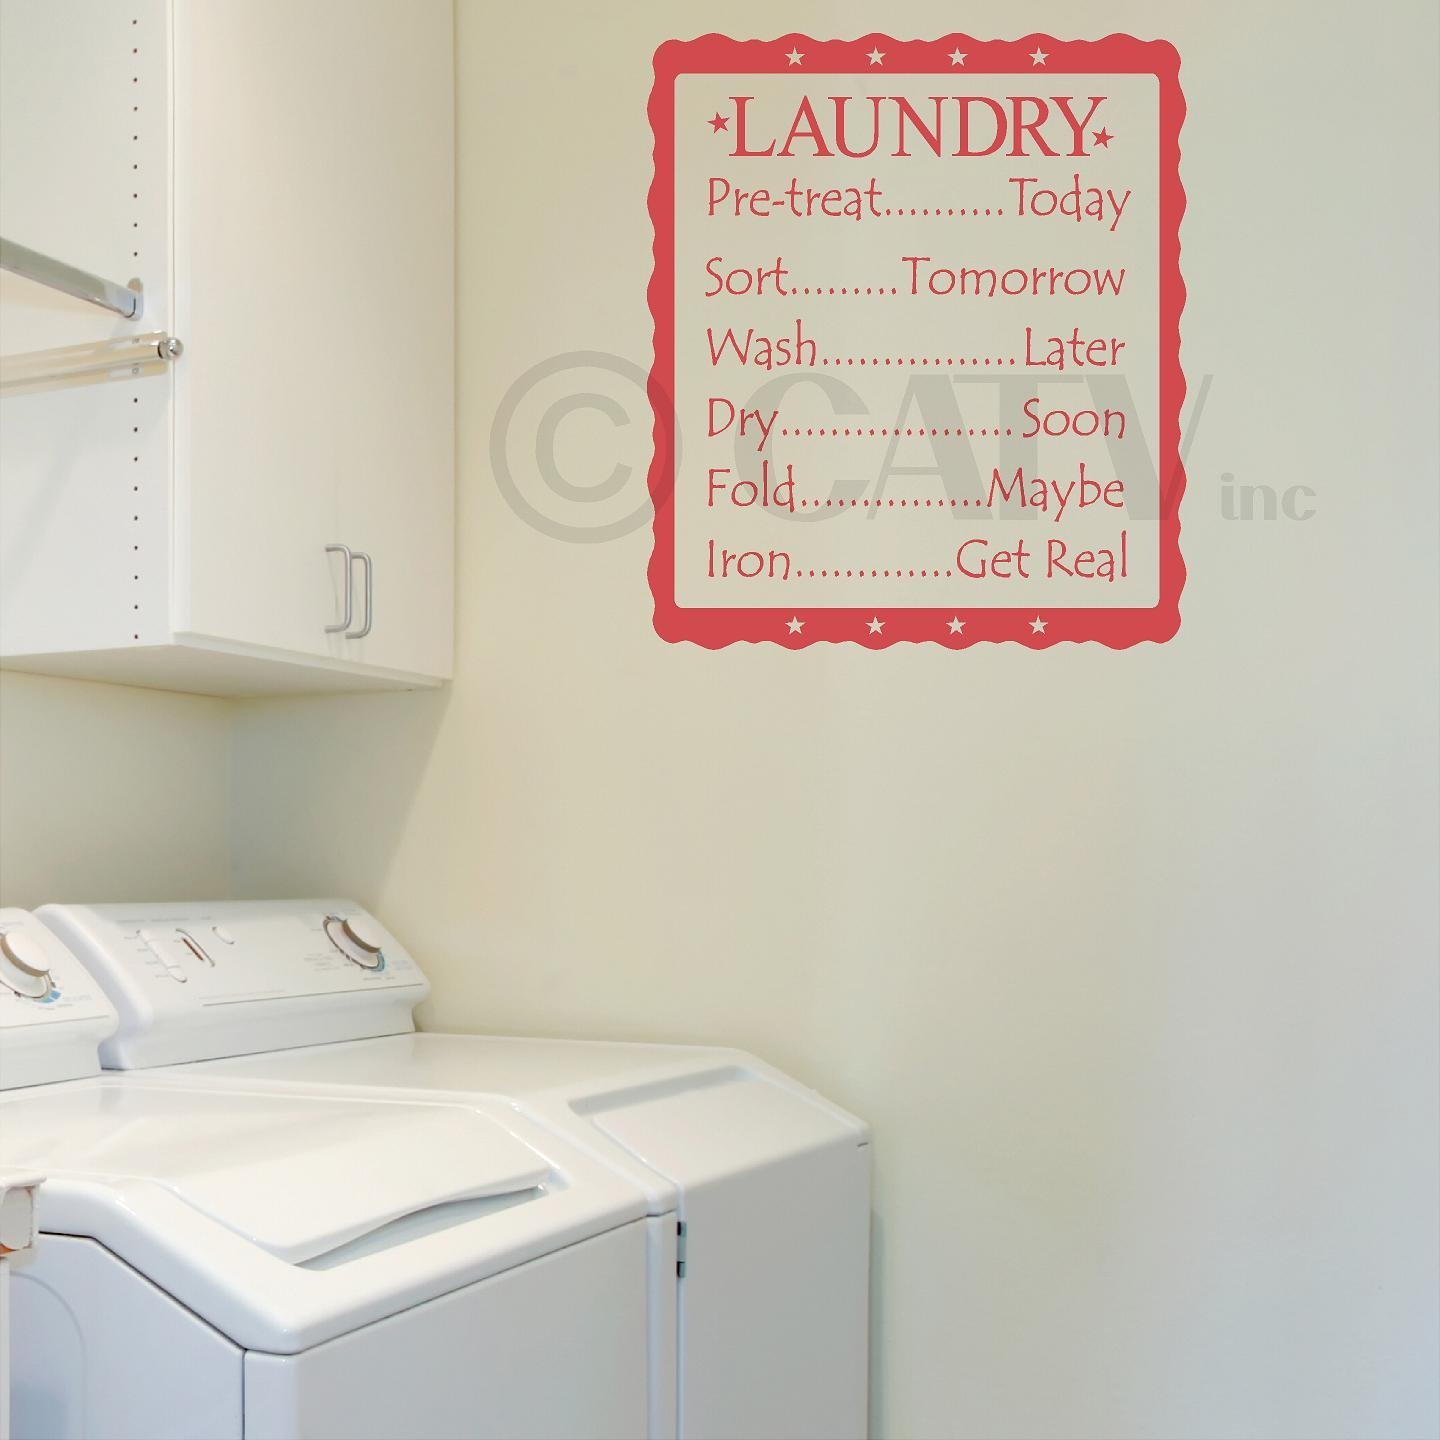 Amazon laundry list pre treatday sortmorrow wash amazon laundry list pre treatday sortmorrow washter dryon foldybe iront real vinyl lettering wall decal 165w x 20h amipublicfo Gallery